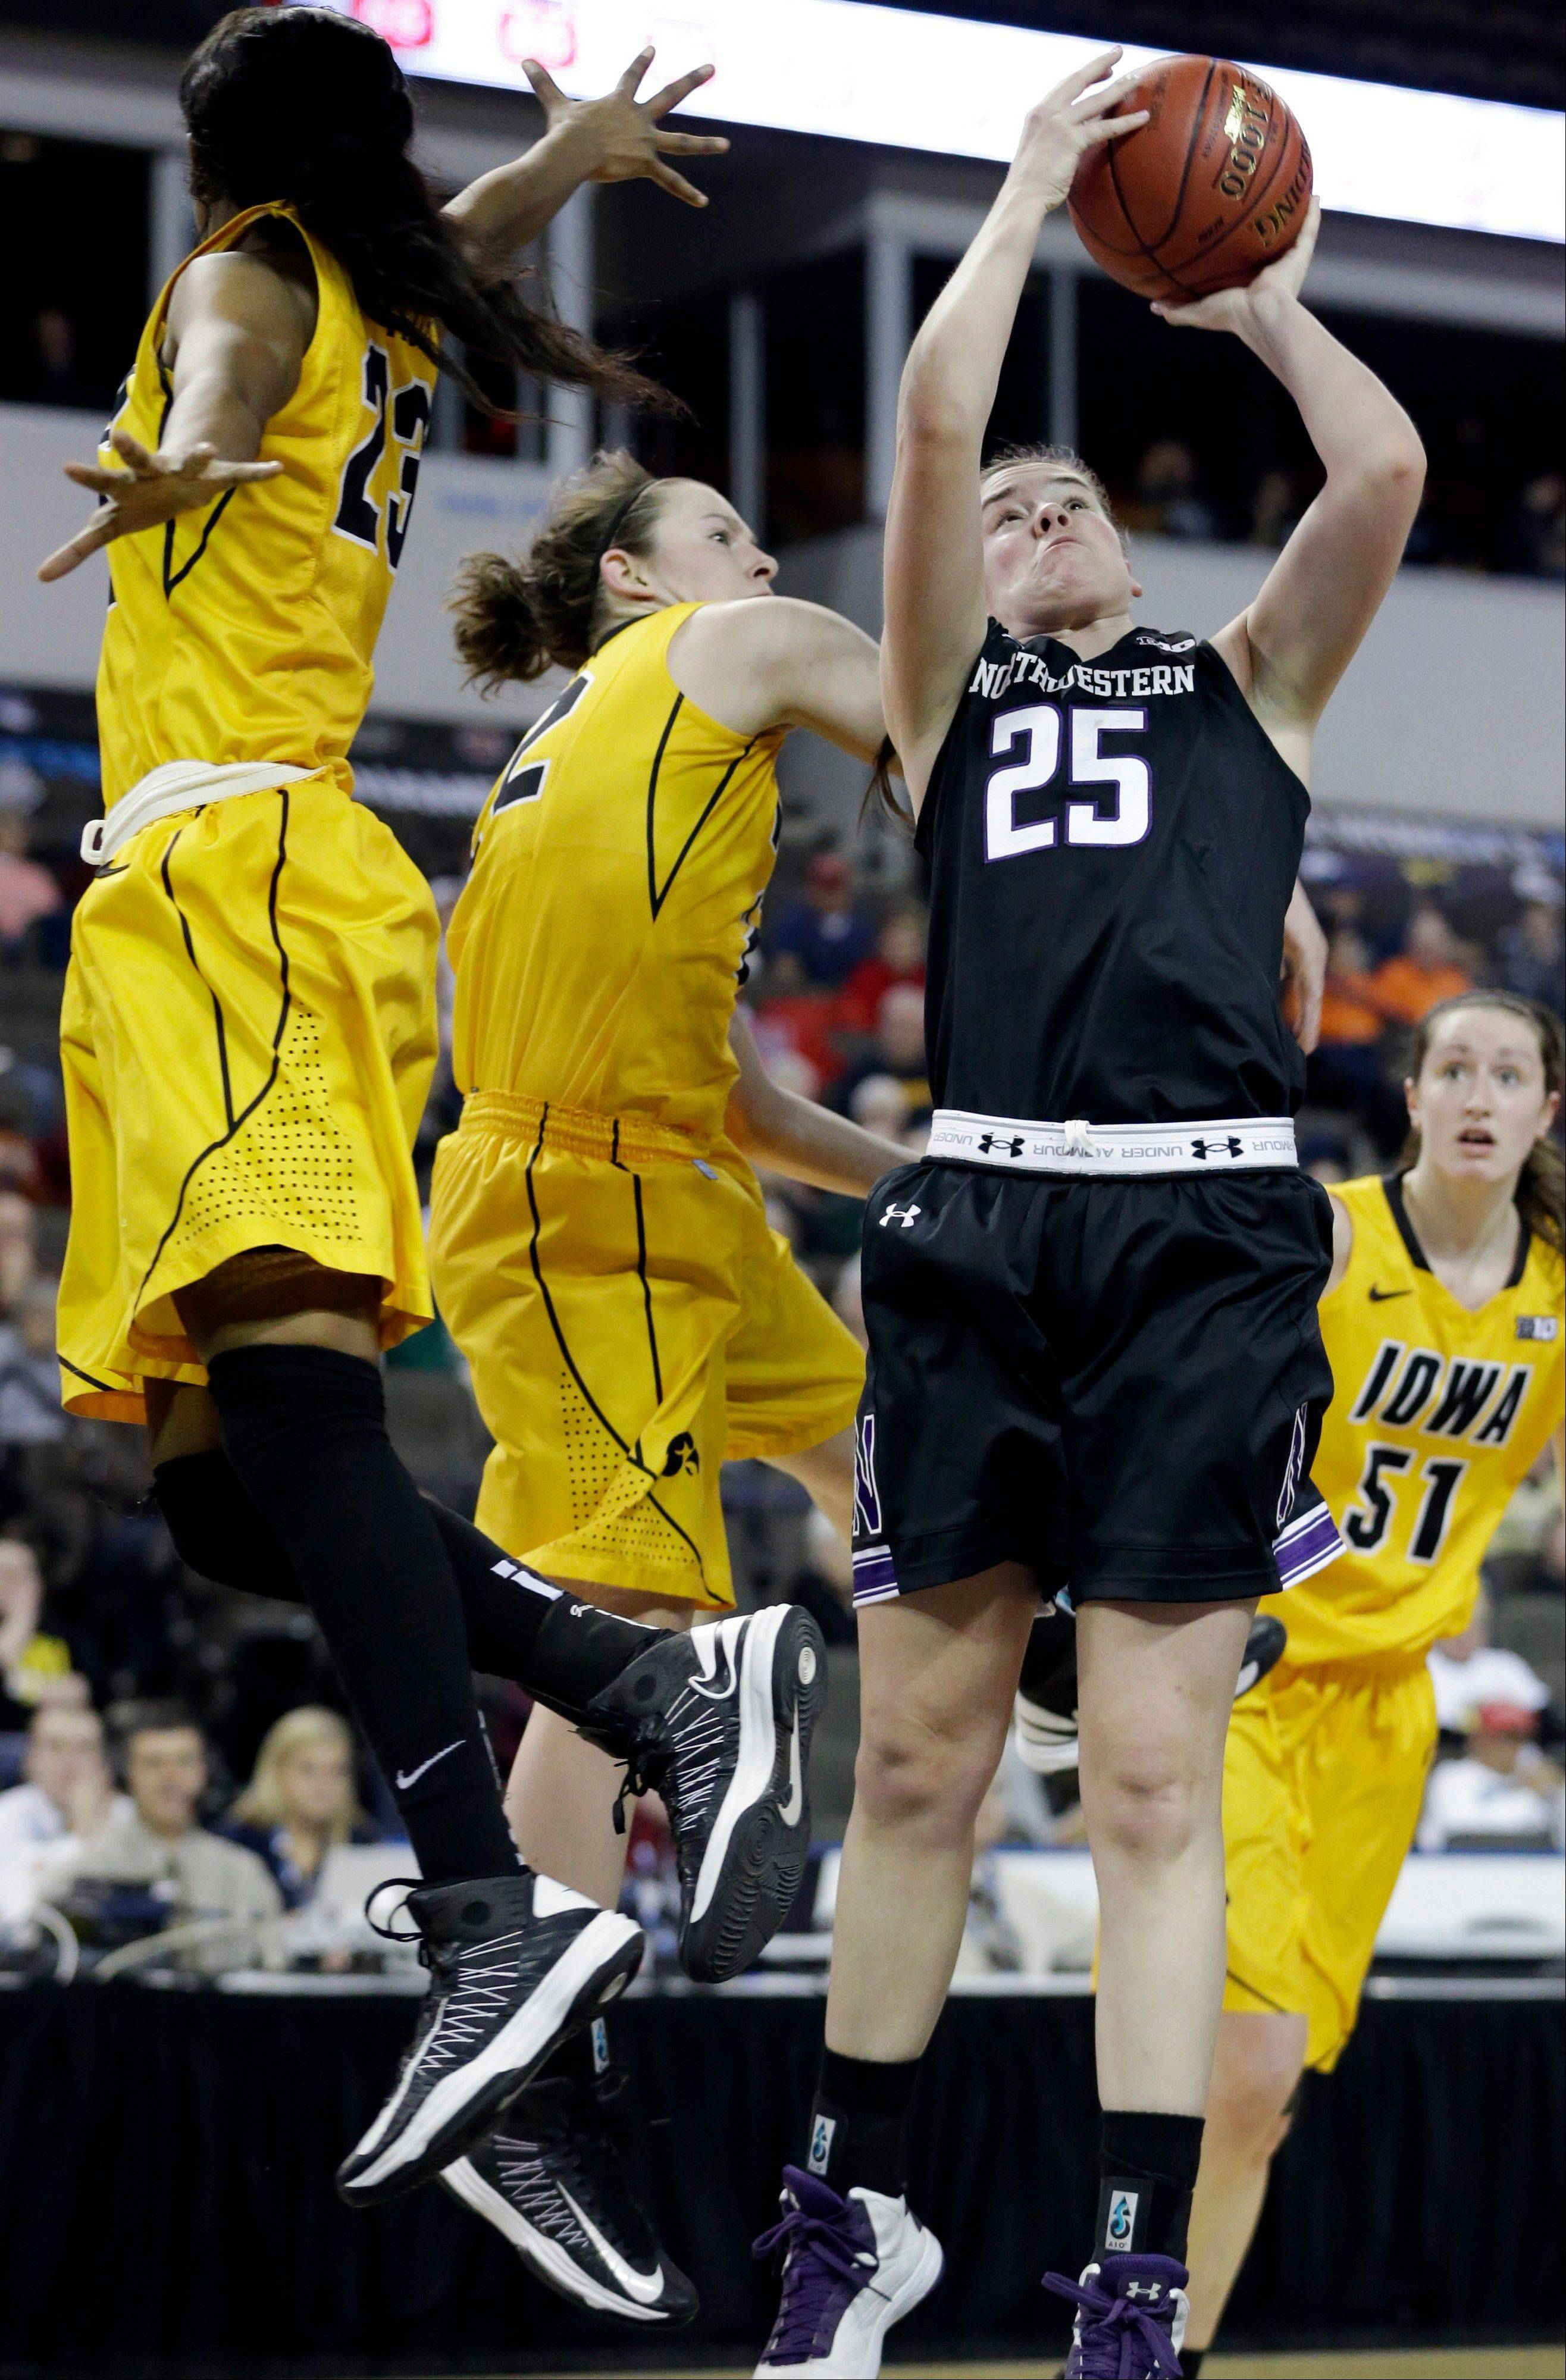 Northwestern forward Maggie Lyon shoots past Iowa guard Theairra Taylor, left, and guard Samamtha Logic Thursday during first-half action at the Big Ten Women's Basketball Tournament at the Sears Centre in Hoffman Estates.